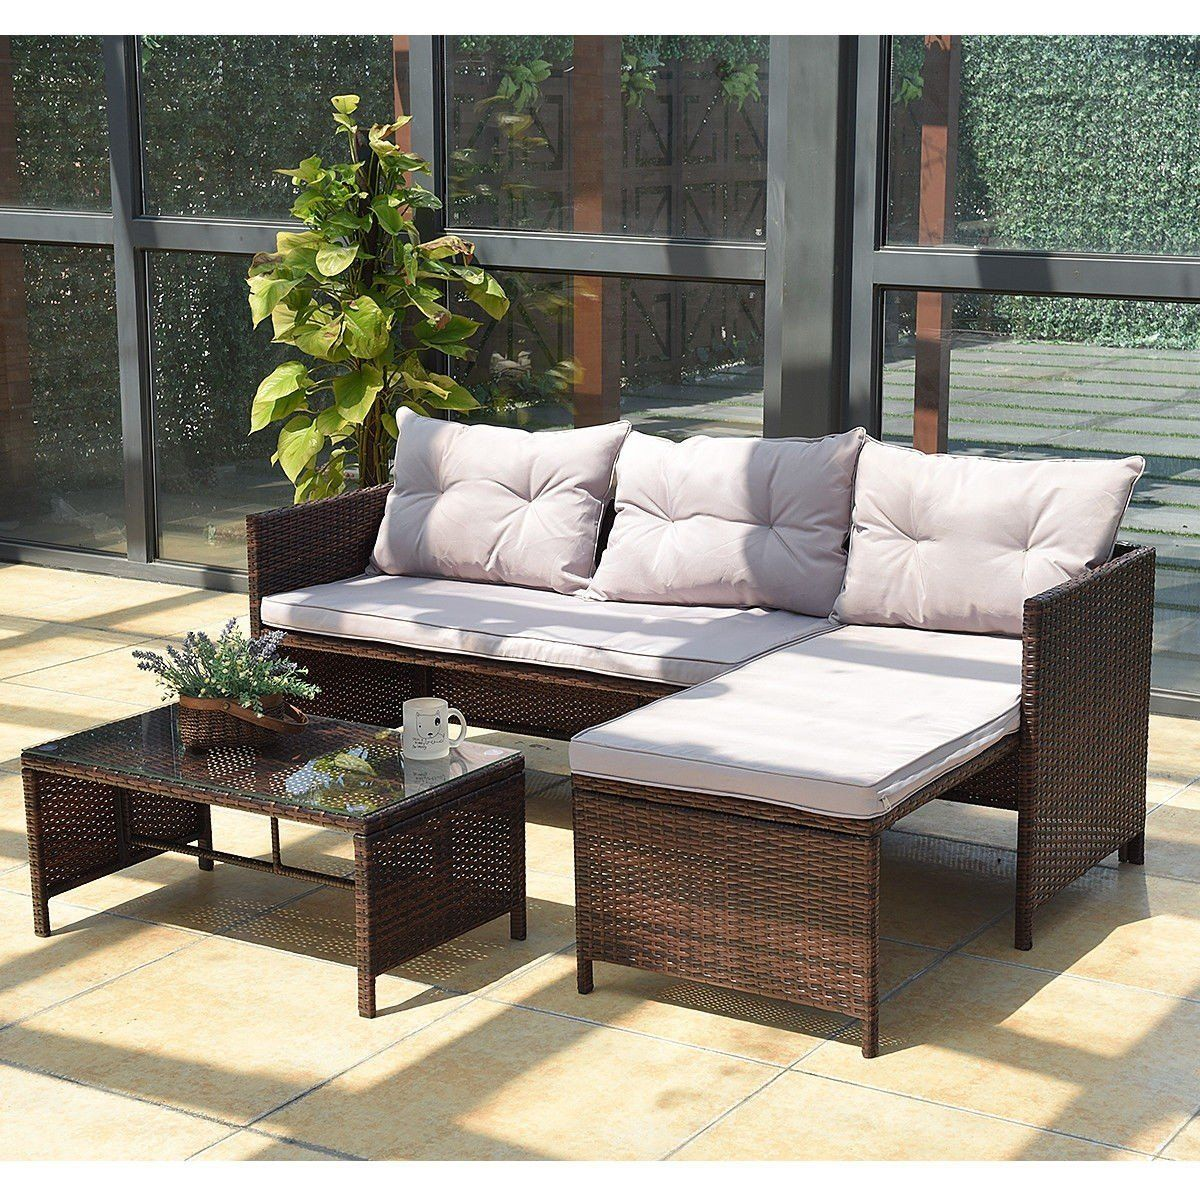 3 Pcs Rattan Wicker Outdoor Patio Sofa Set With Images Patio